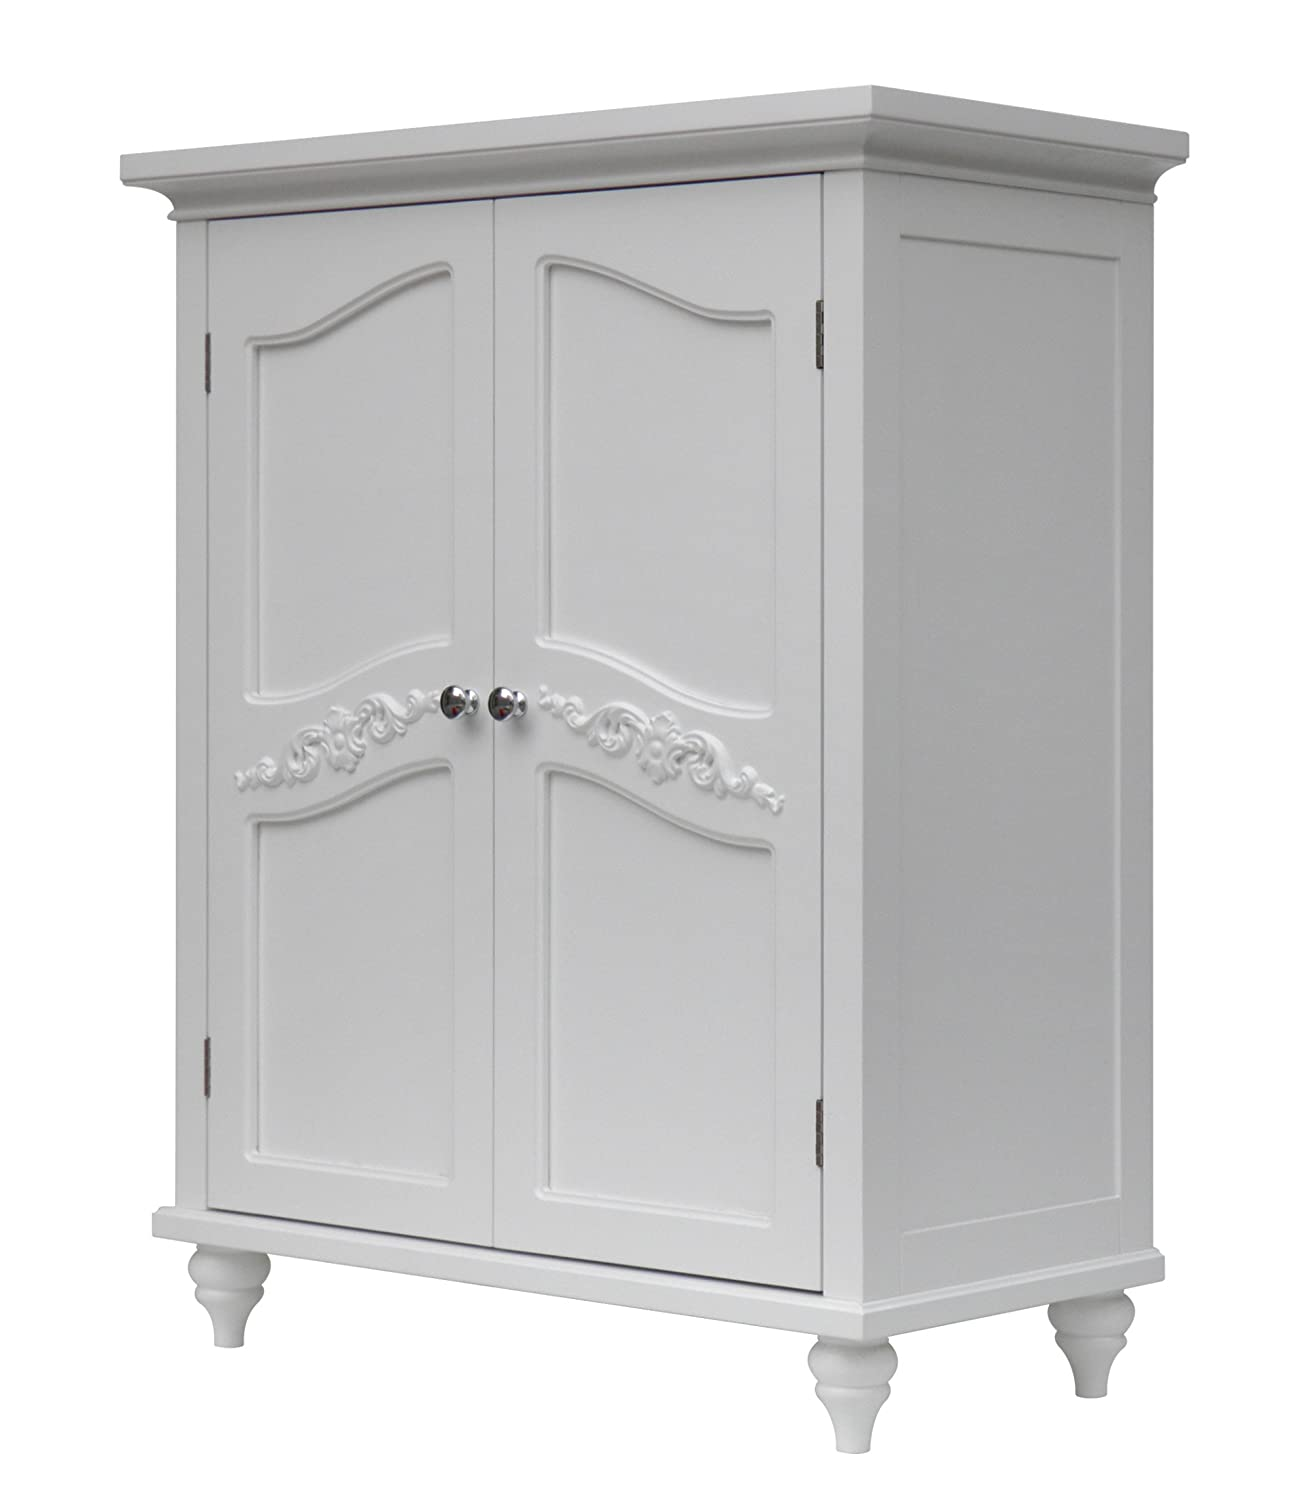 Exceptionnel Amazon.com: Elegant Home Fashion Vera 2 Door Floor Cabinet, White: Kitchen  U0026 Dining